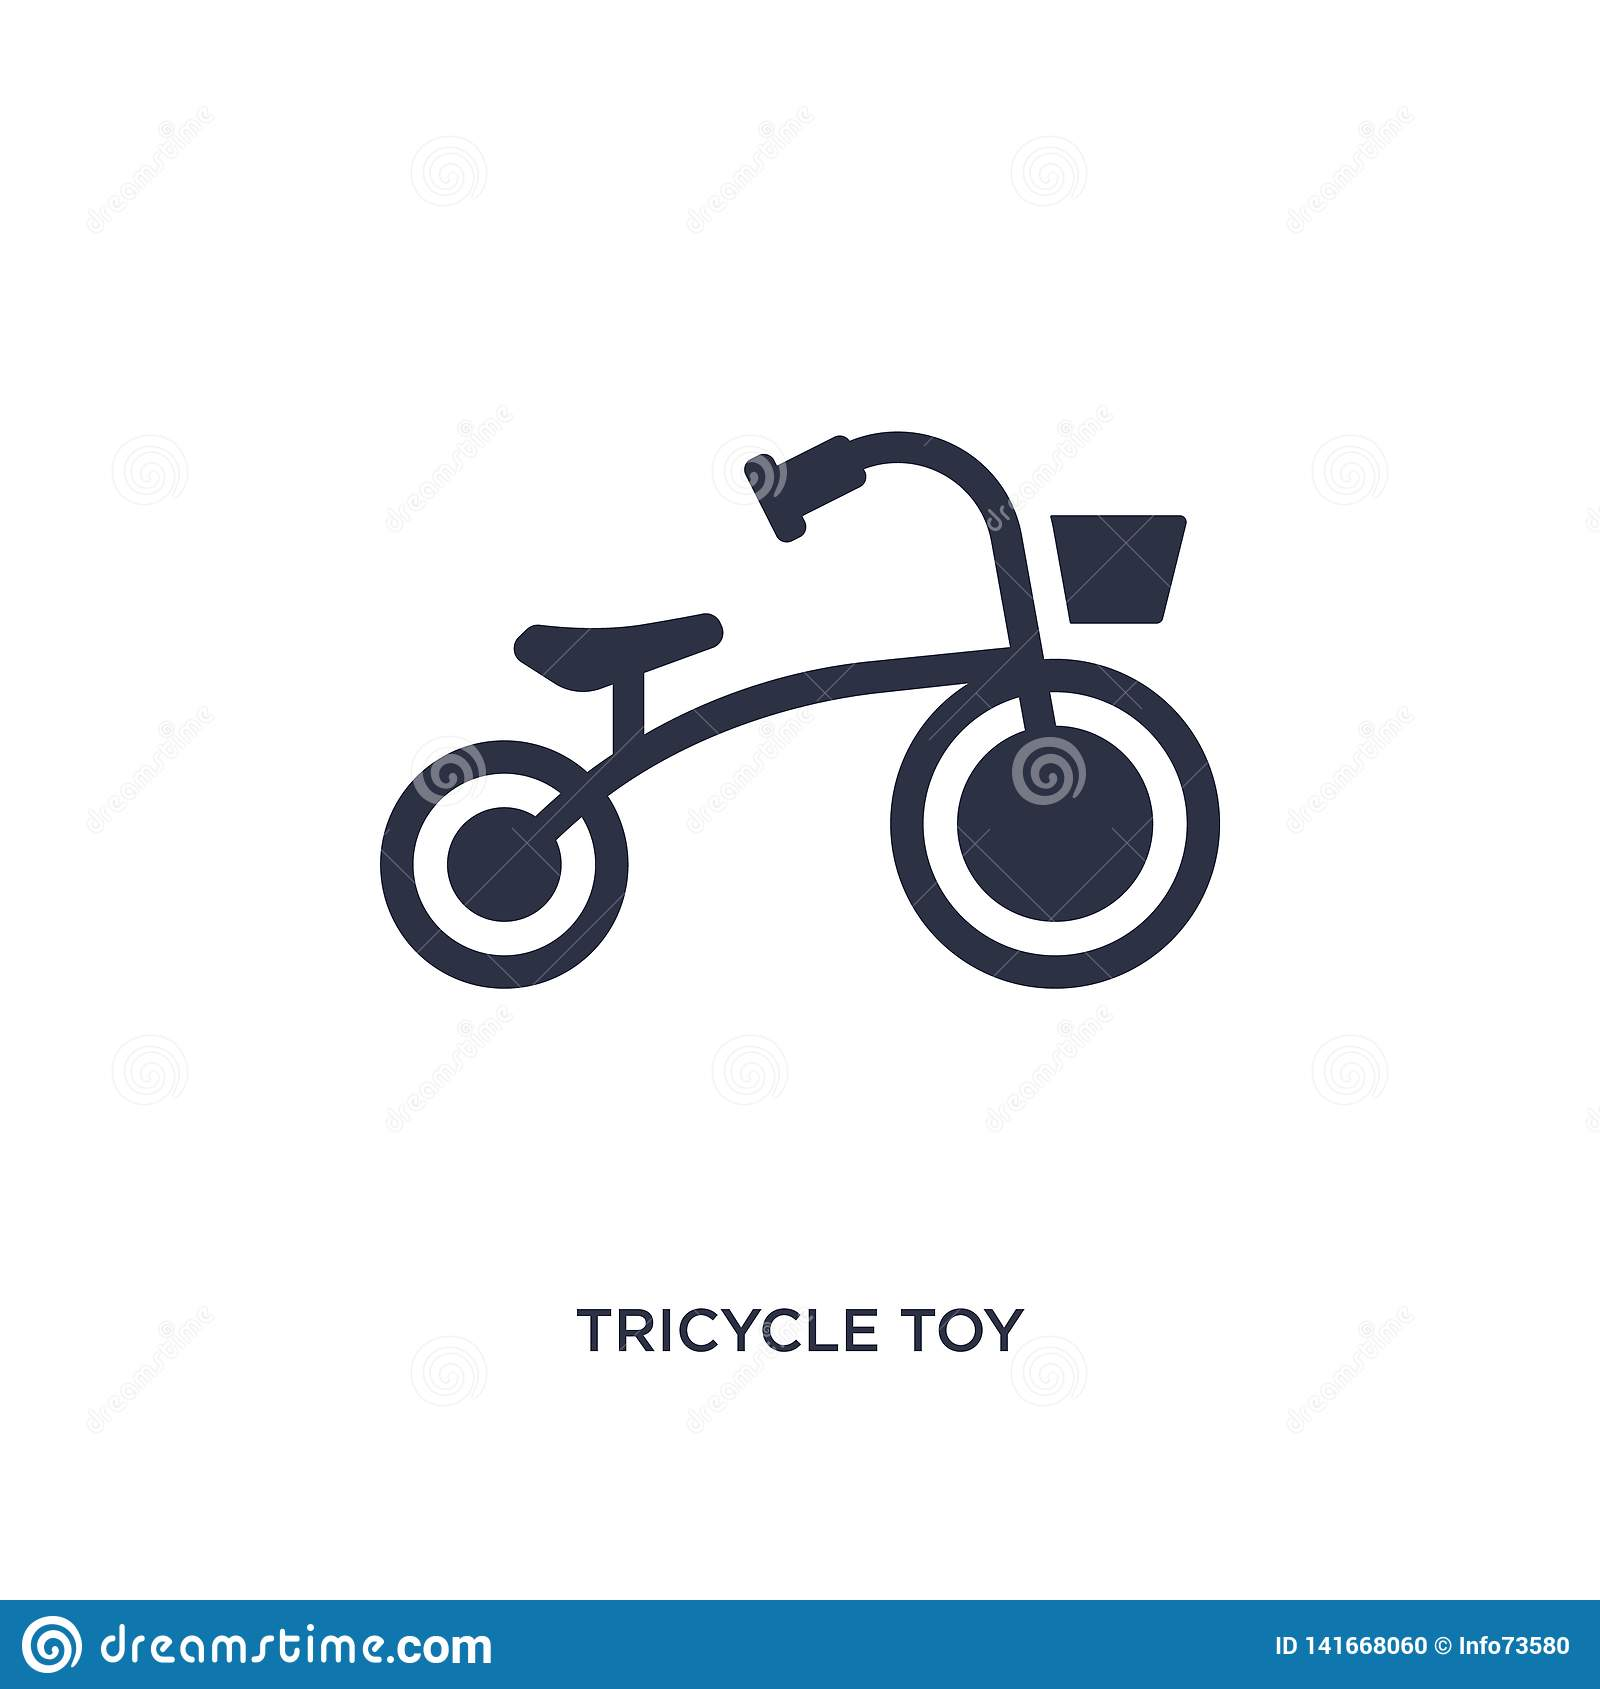 tricycle toy icon on white background. Simple element illustration from toys concept